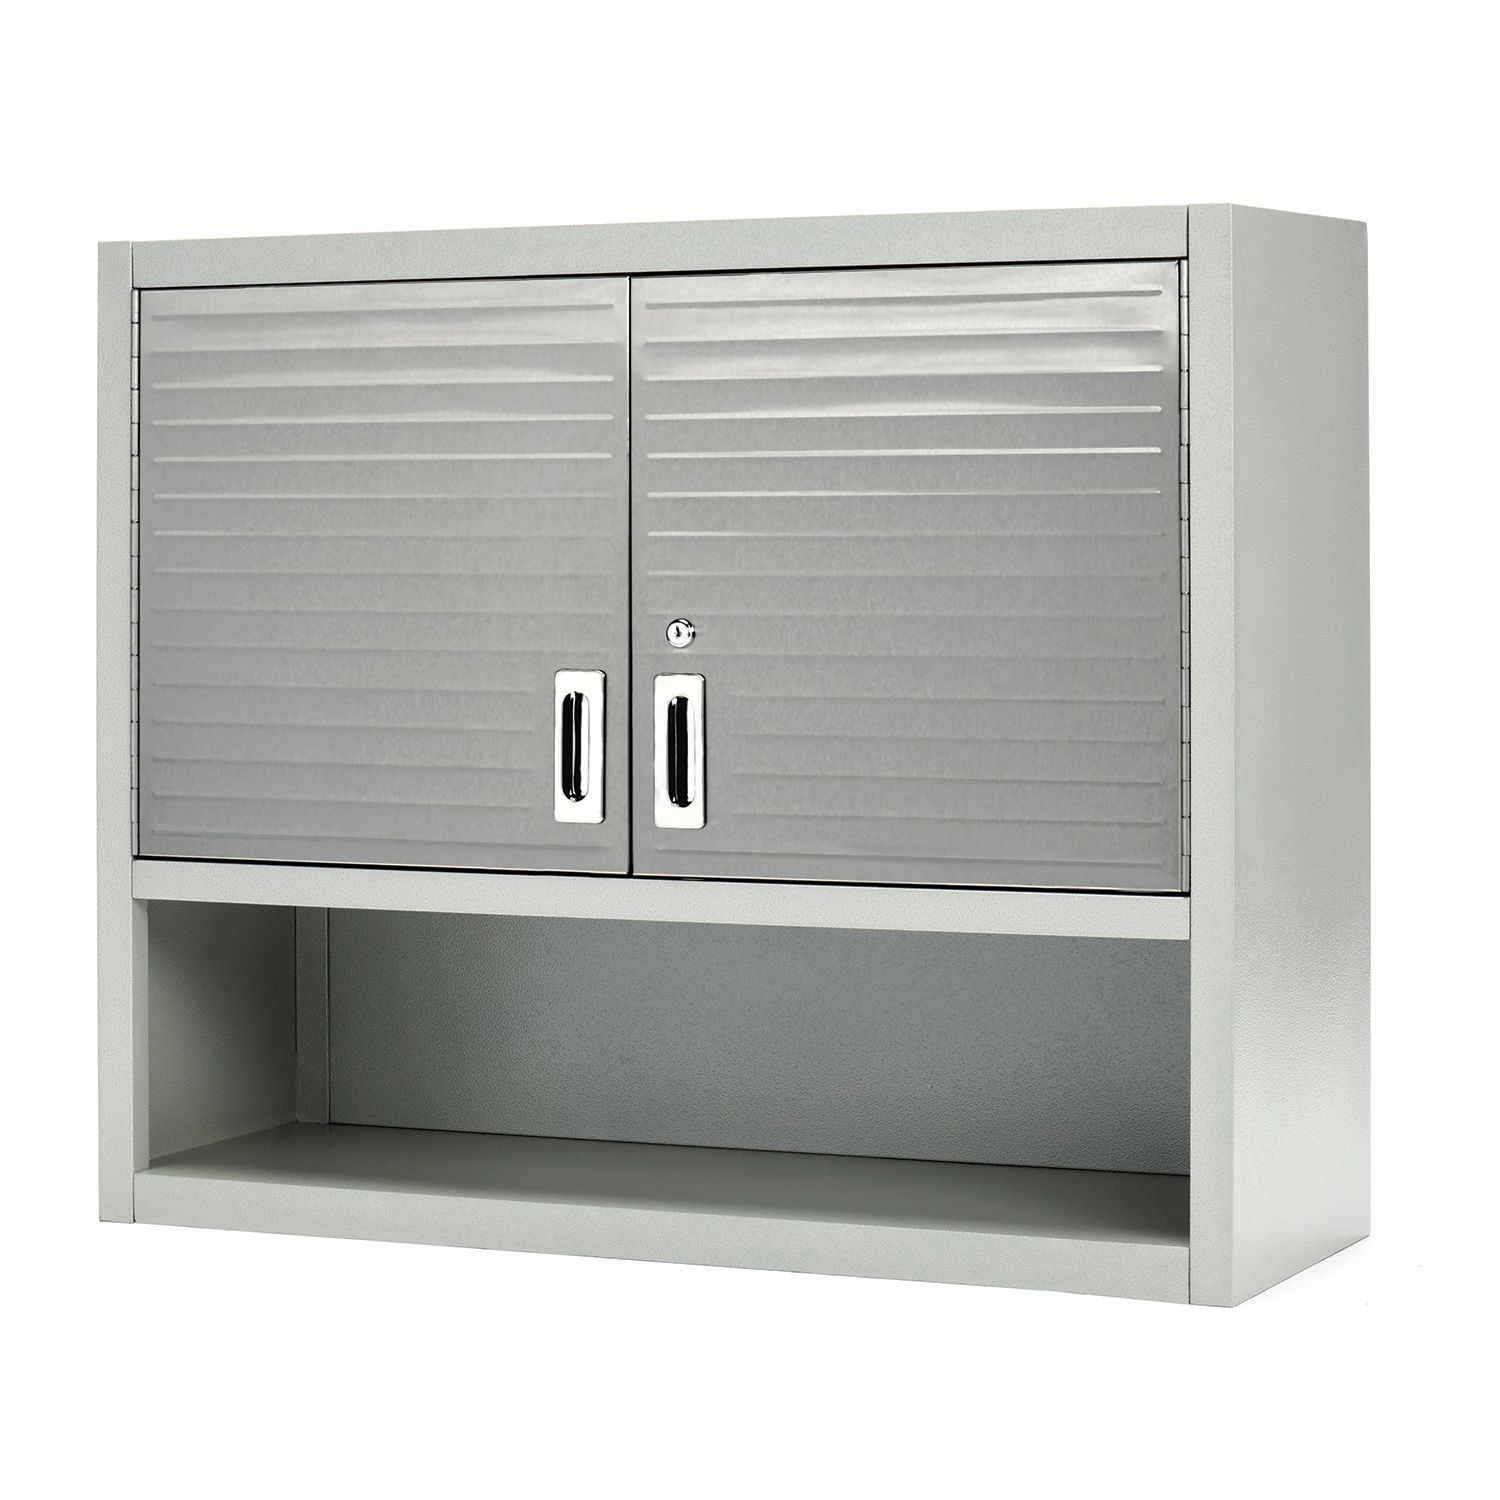 Seville Classics UltraHD Wall Cabinet with Open Shelf